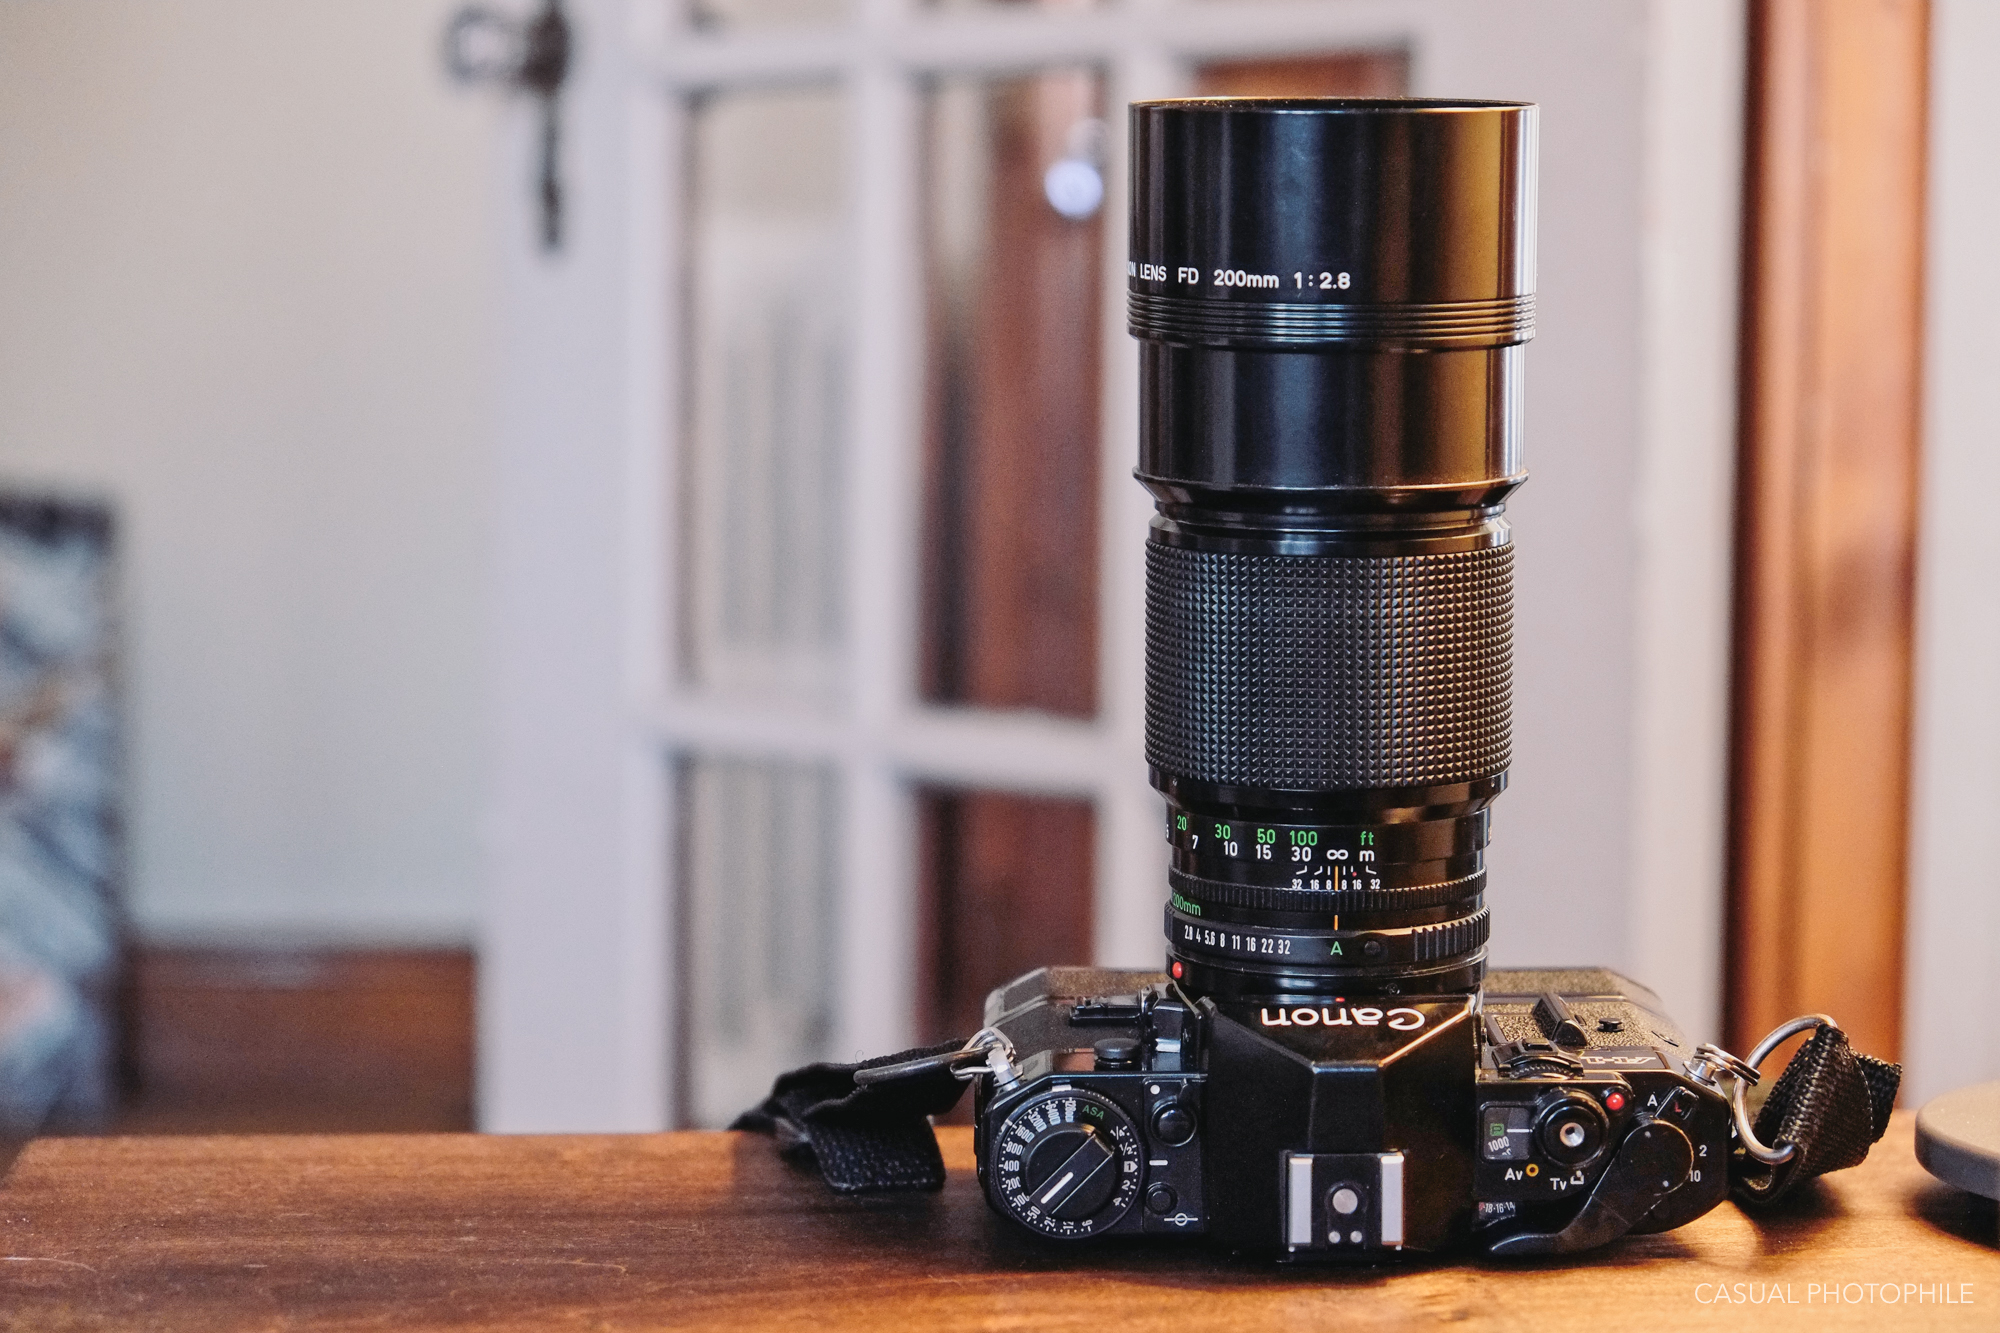 Canon FD 200mm F/2 8 Lens Review - A Case for Legacy Telephoto